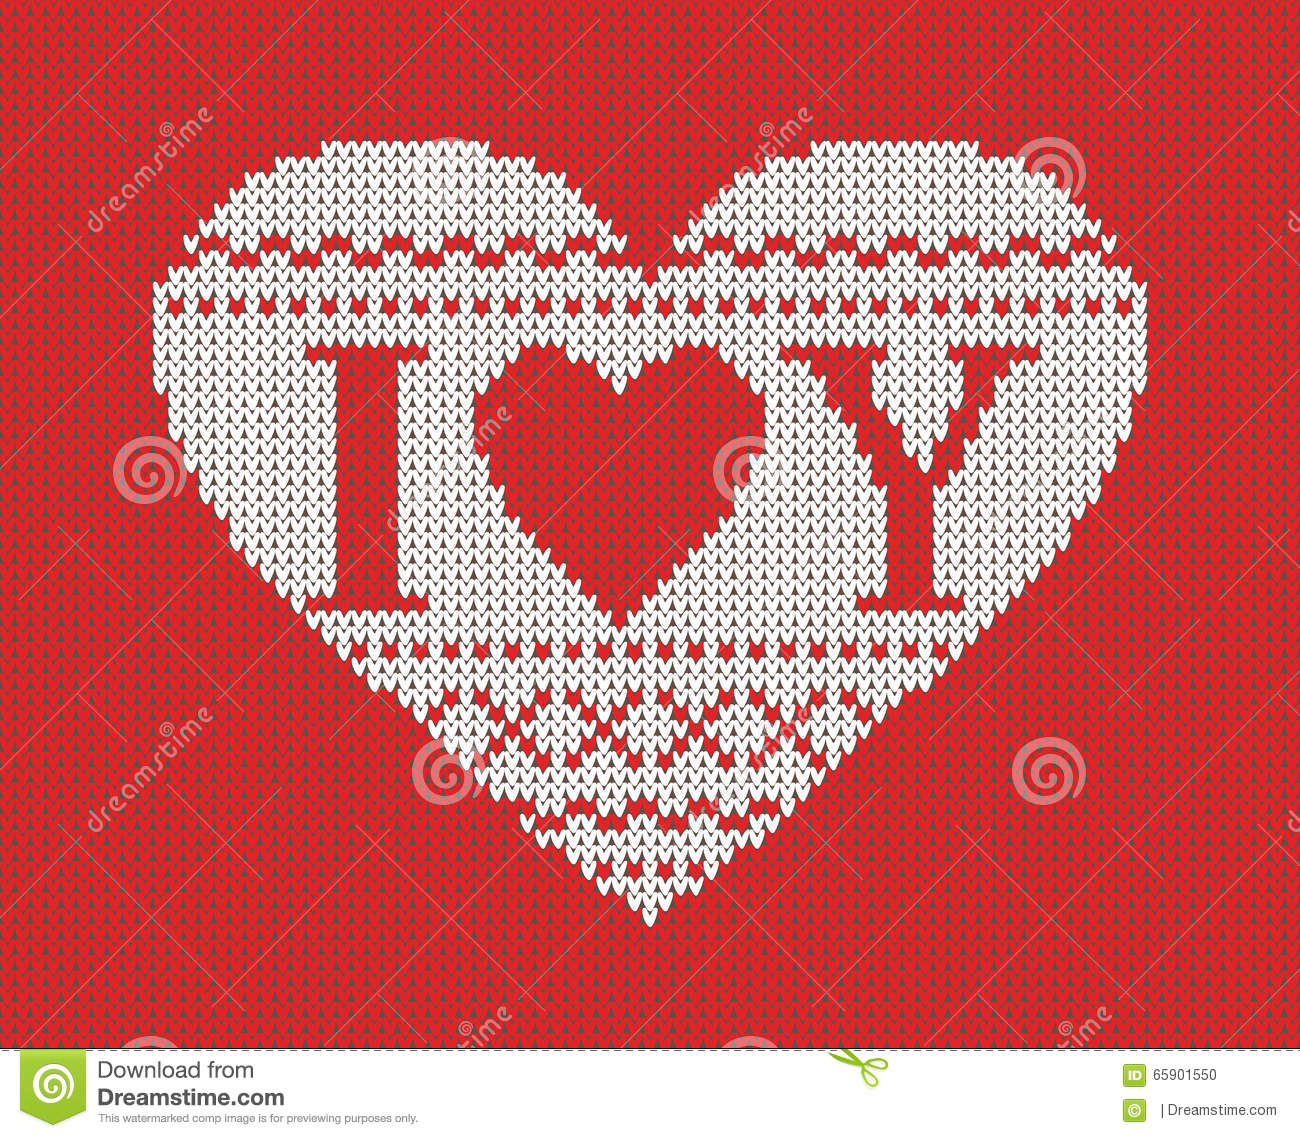 Seamless pattern on the theme of Valentine s Day with an image of the Norwegian patterns and hearts. Wool knitted